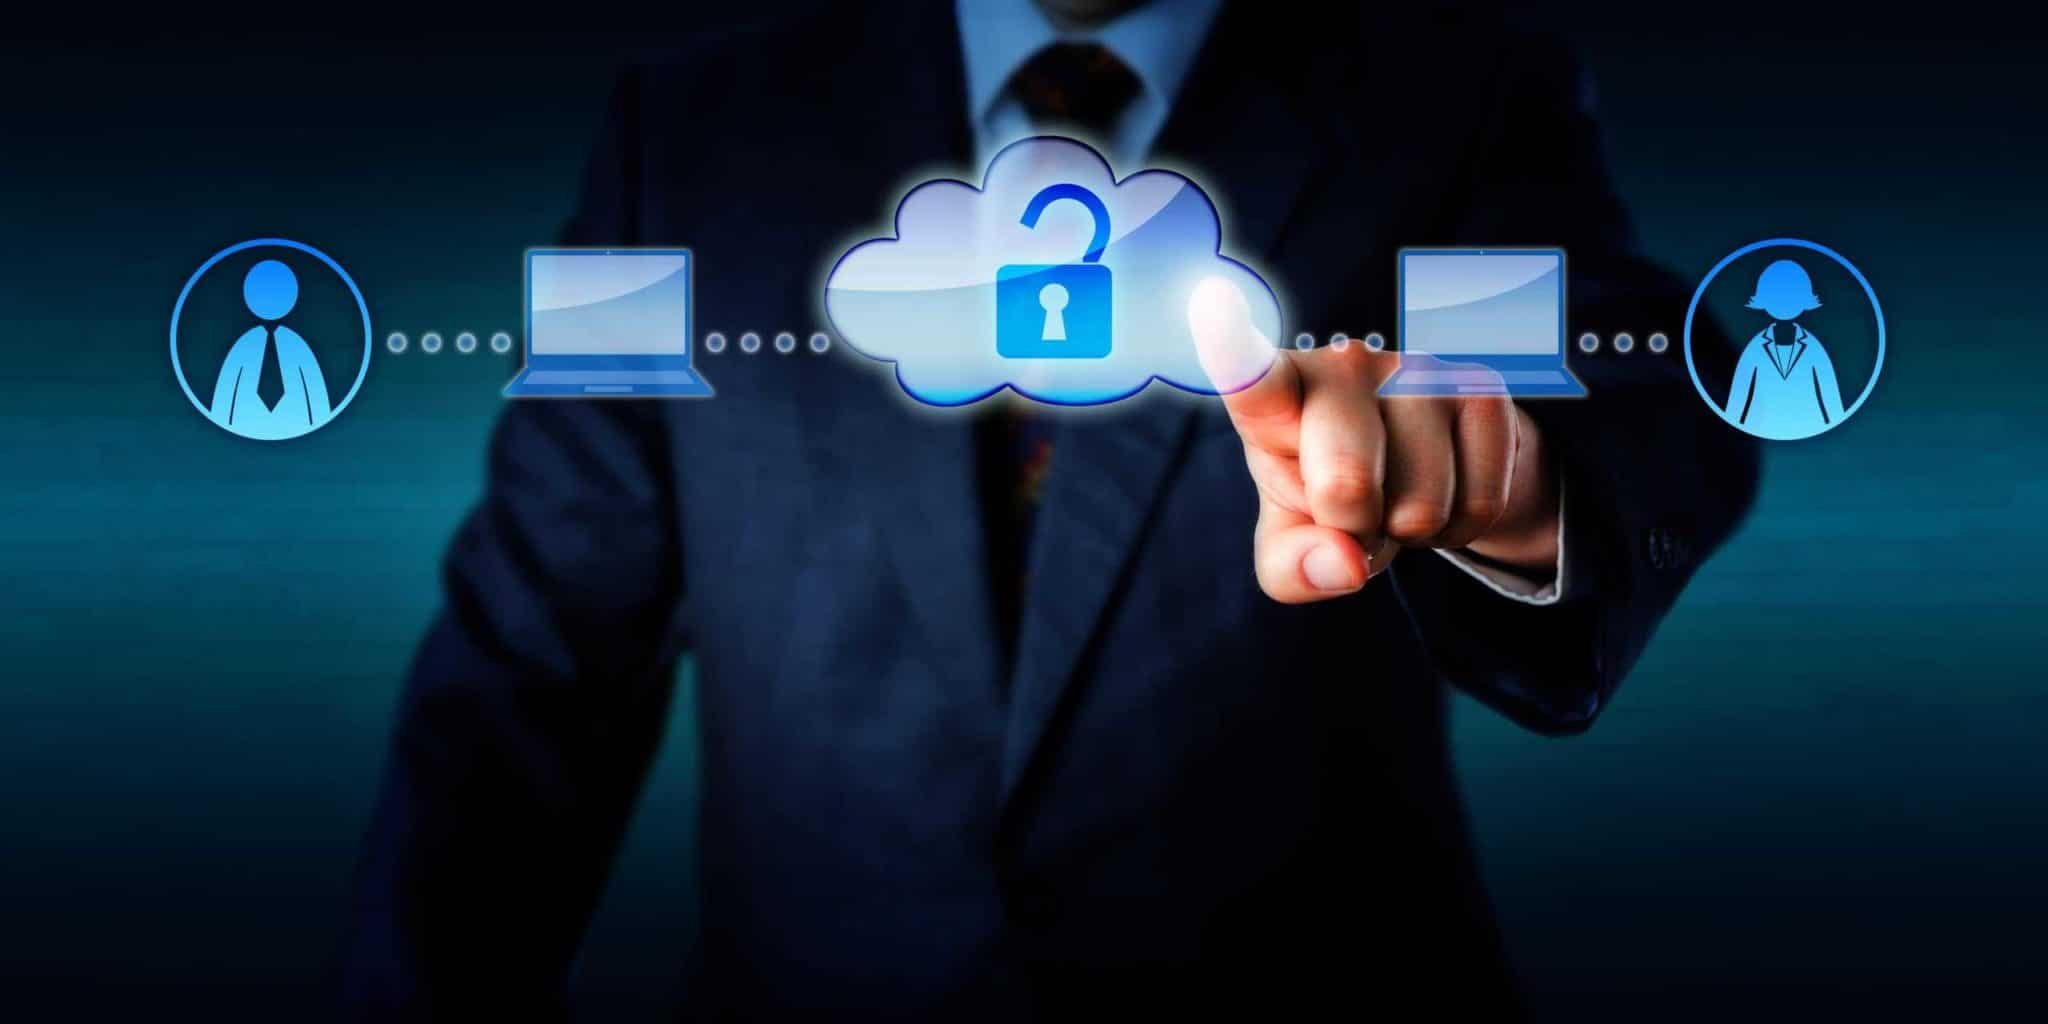 Managing Security with a Distributed Workforce